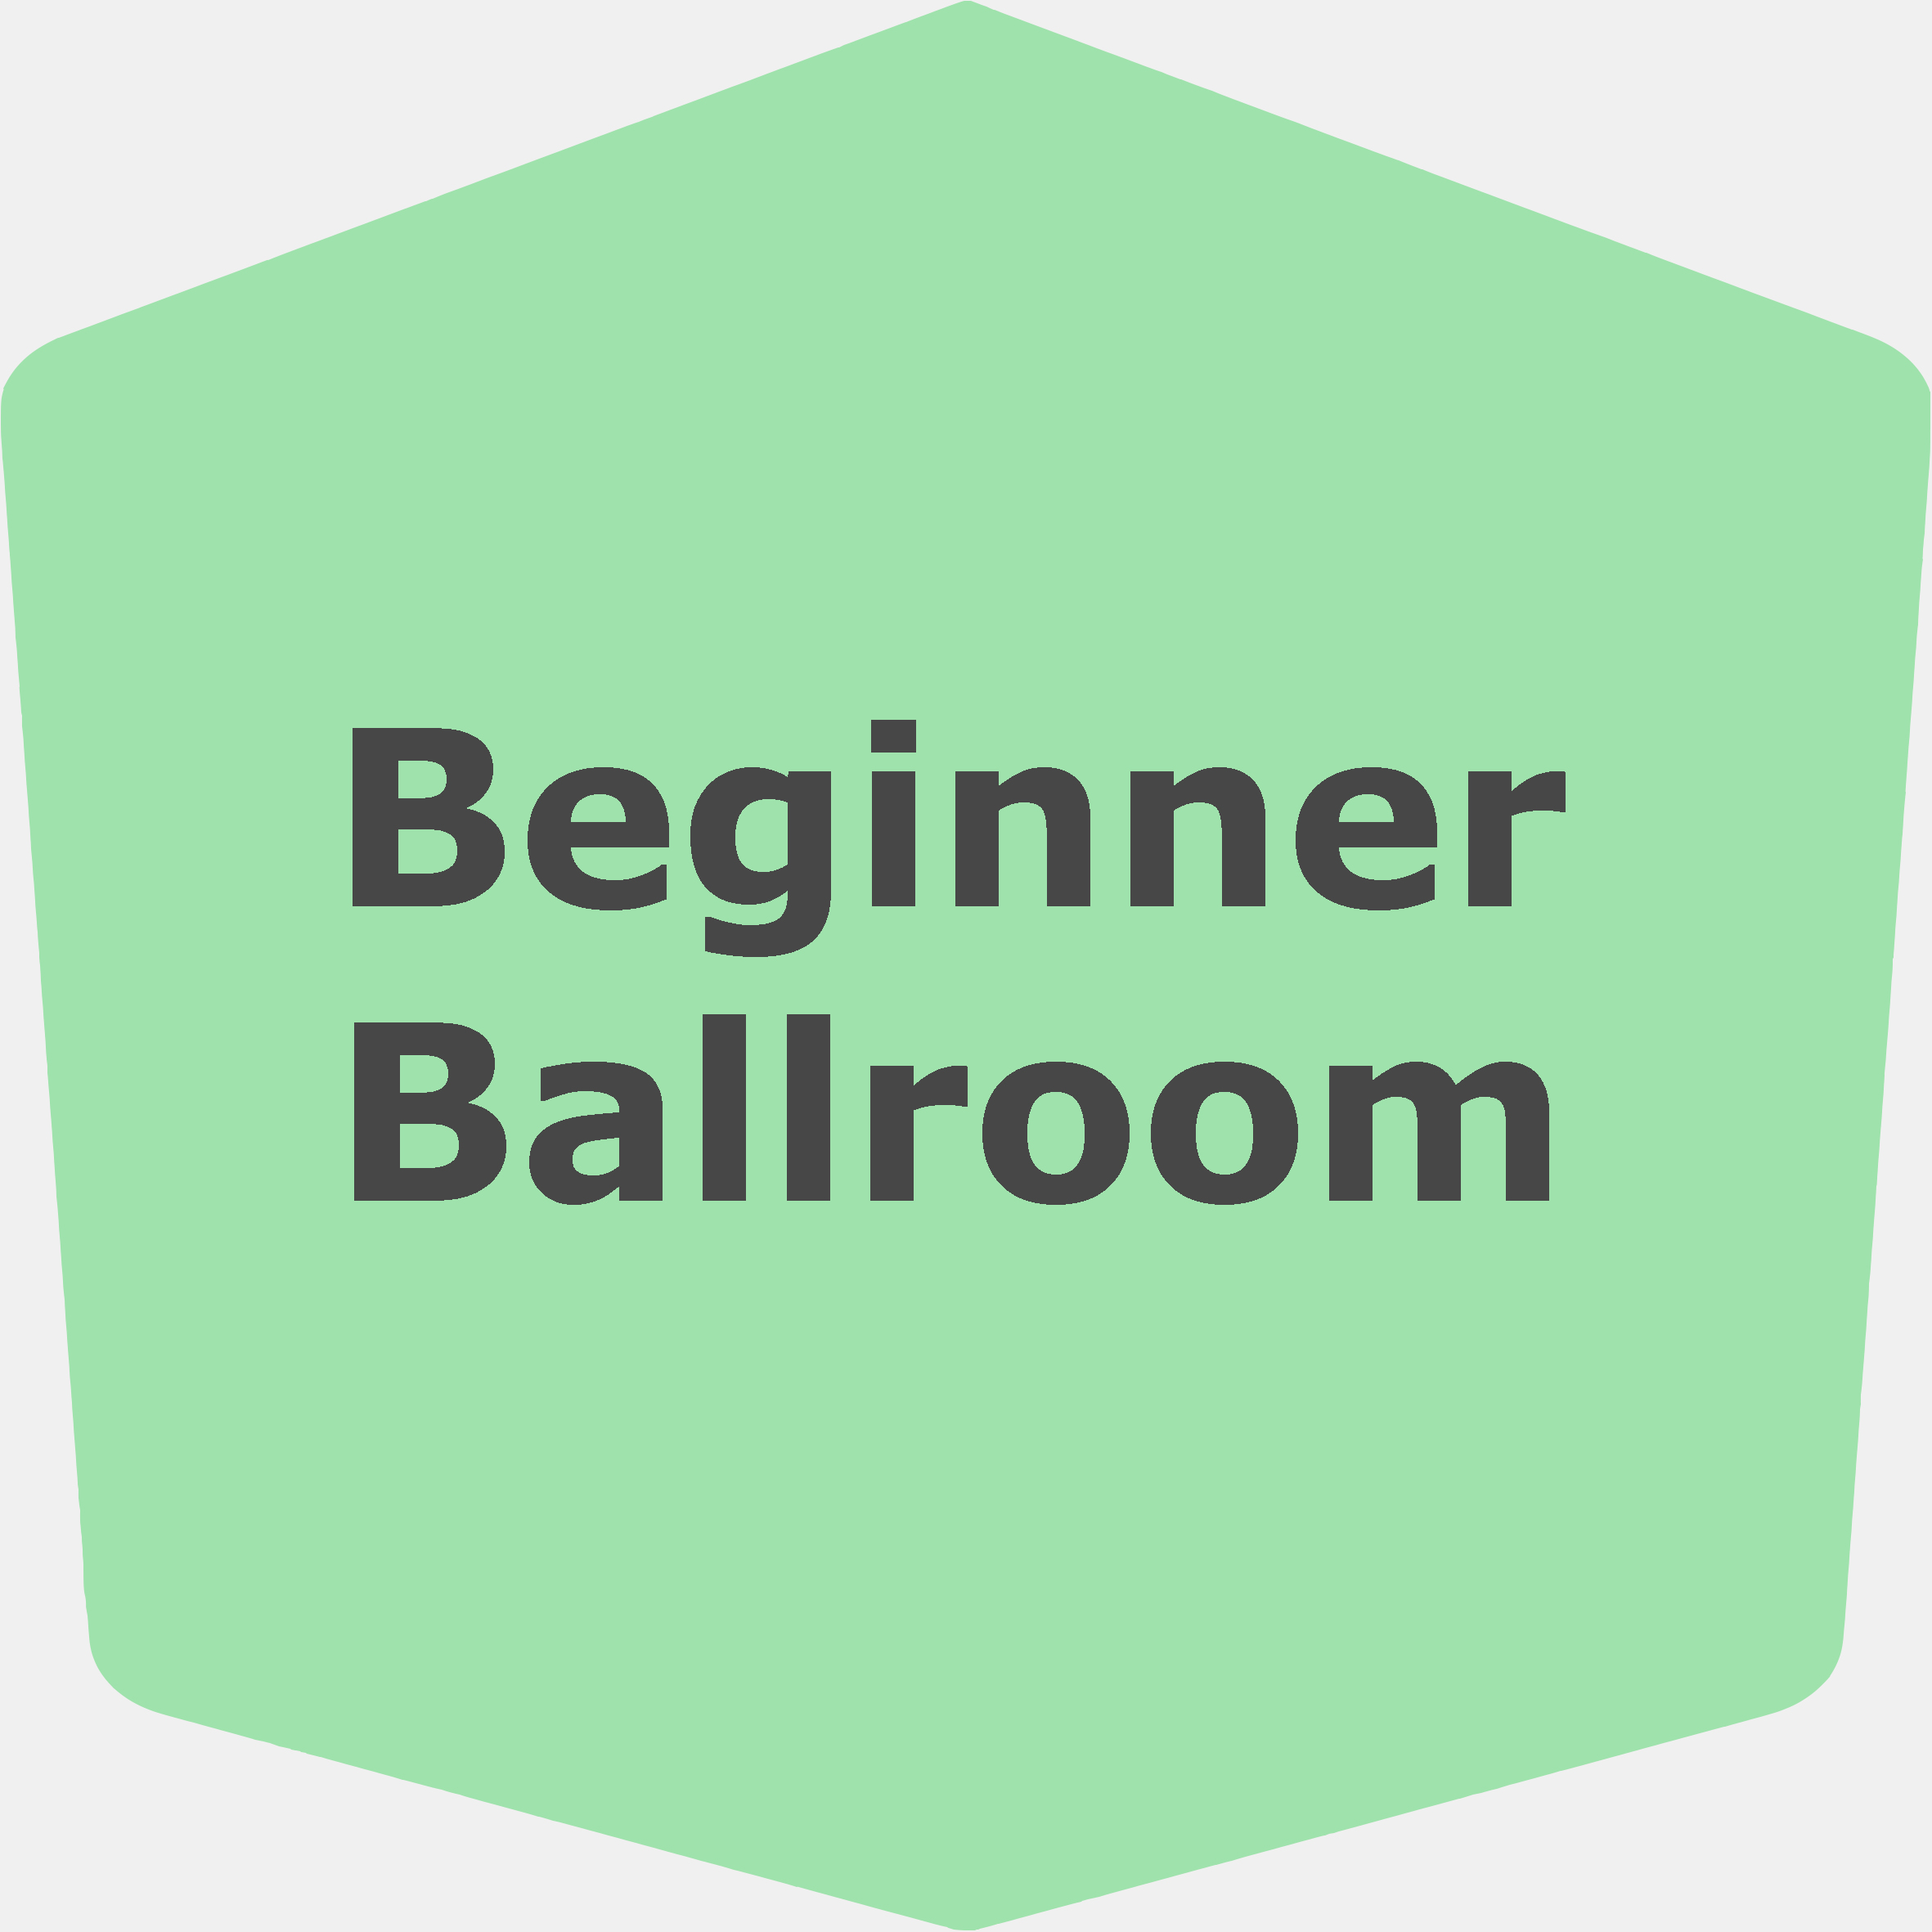 #Beginner Ballroom (Icon).jpg